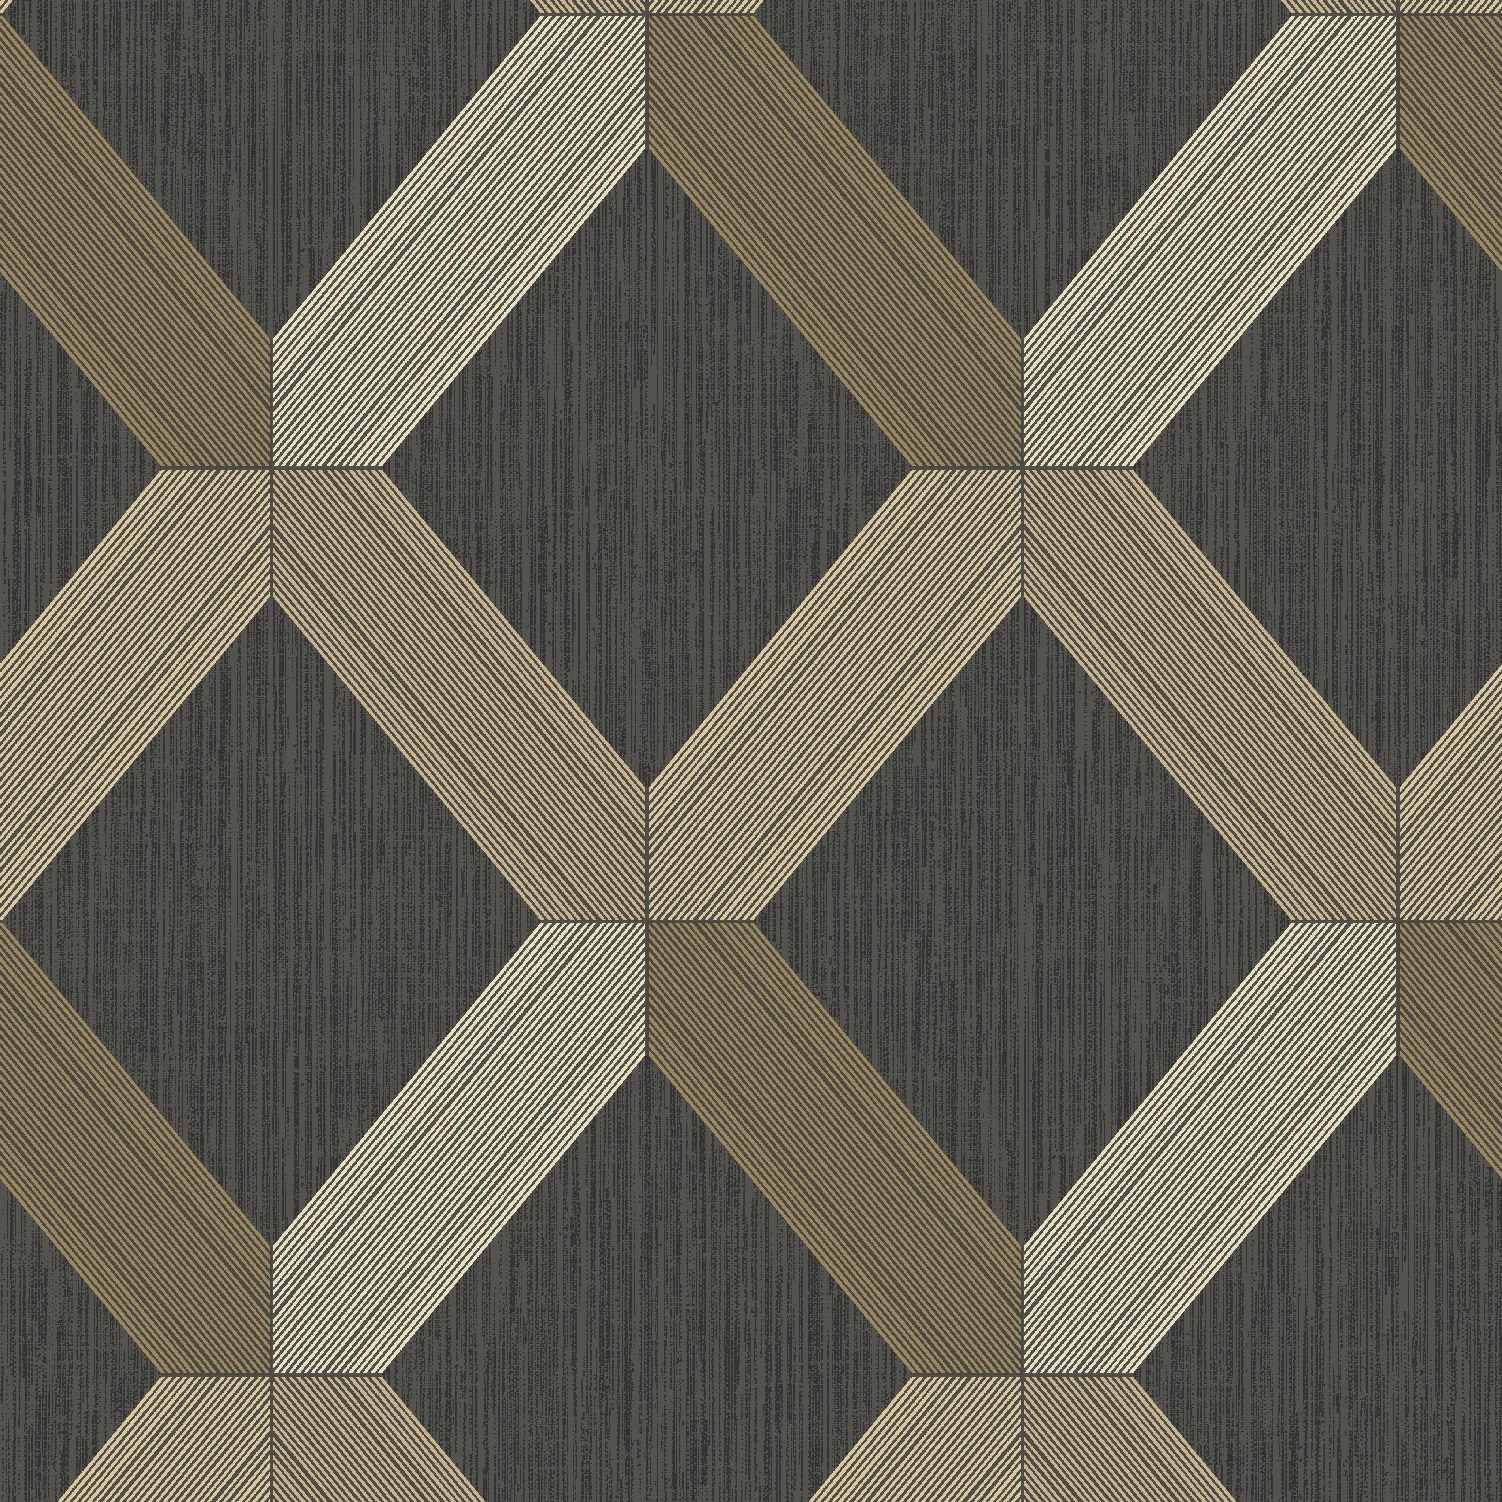 Lozenga   BlackGold Wallpaper and wallcoverings from Holden Decor 1502x1502